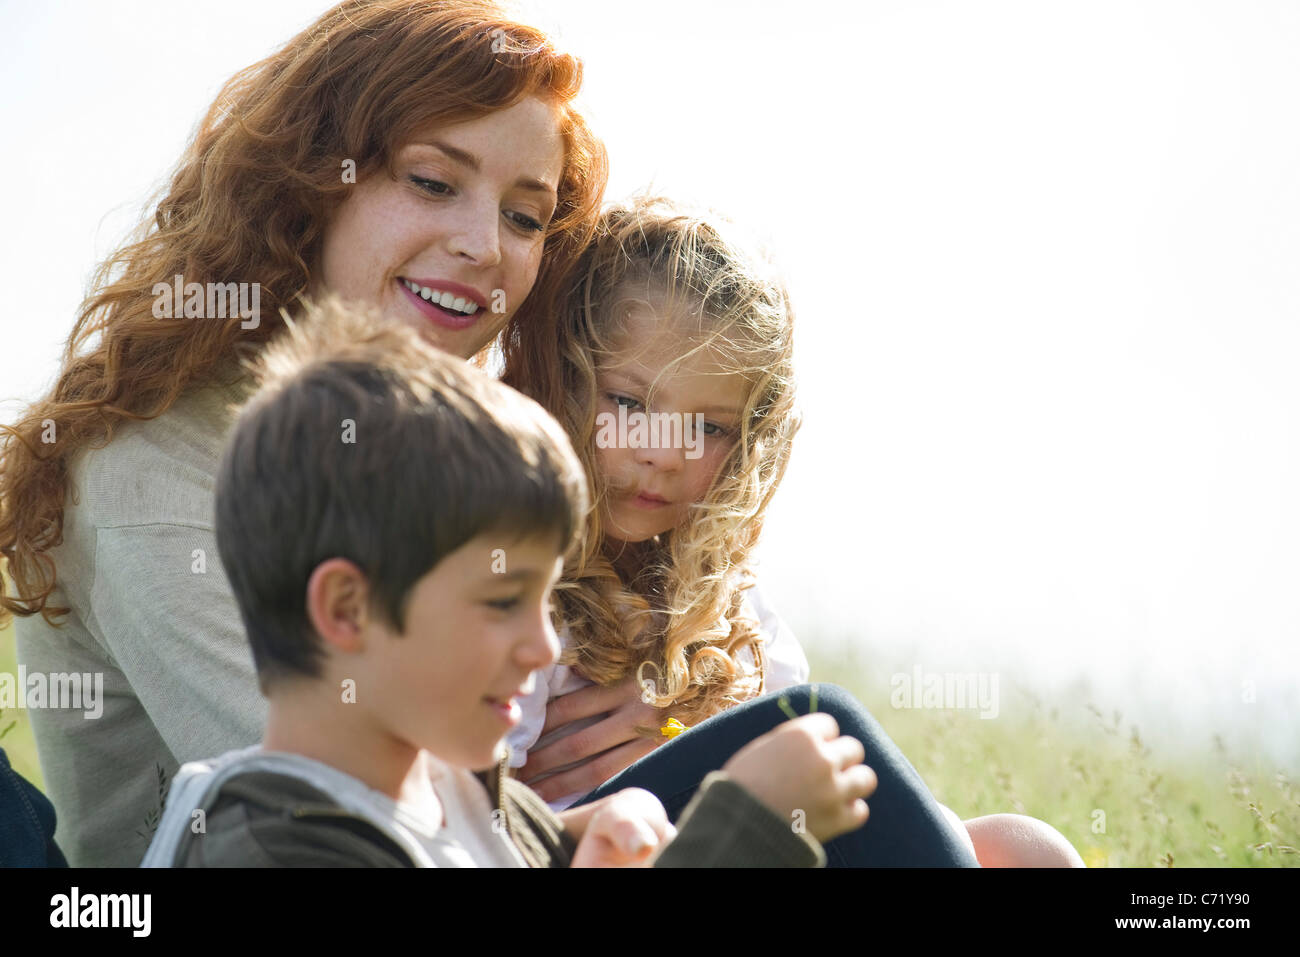 Mother and two children relaxing together outdoors - Stock Image